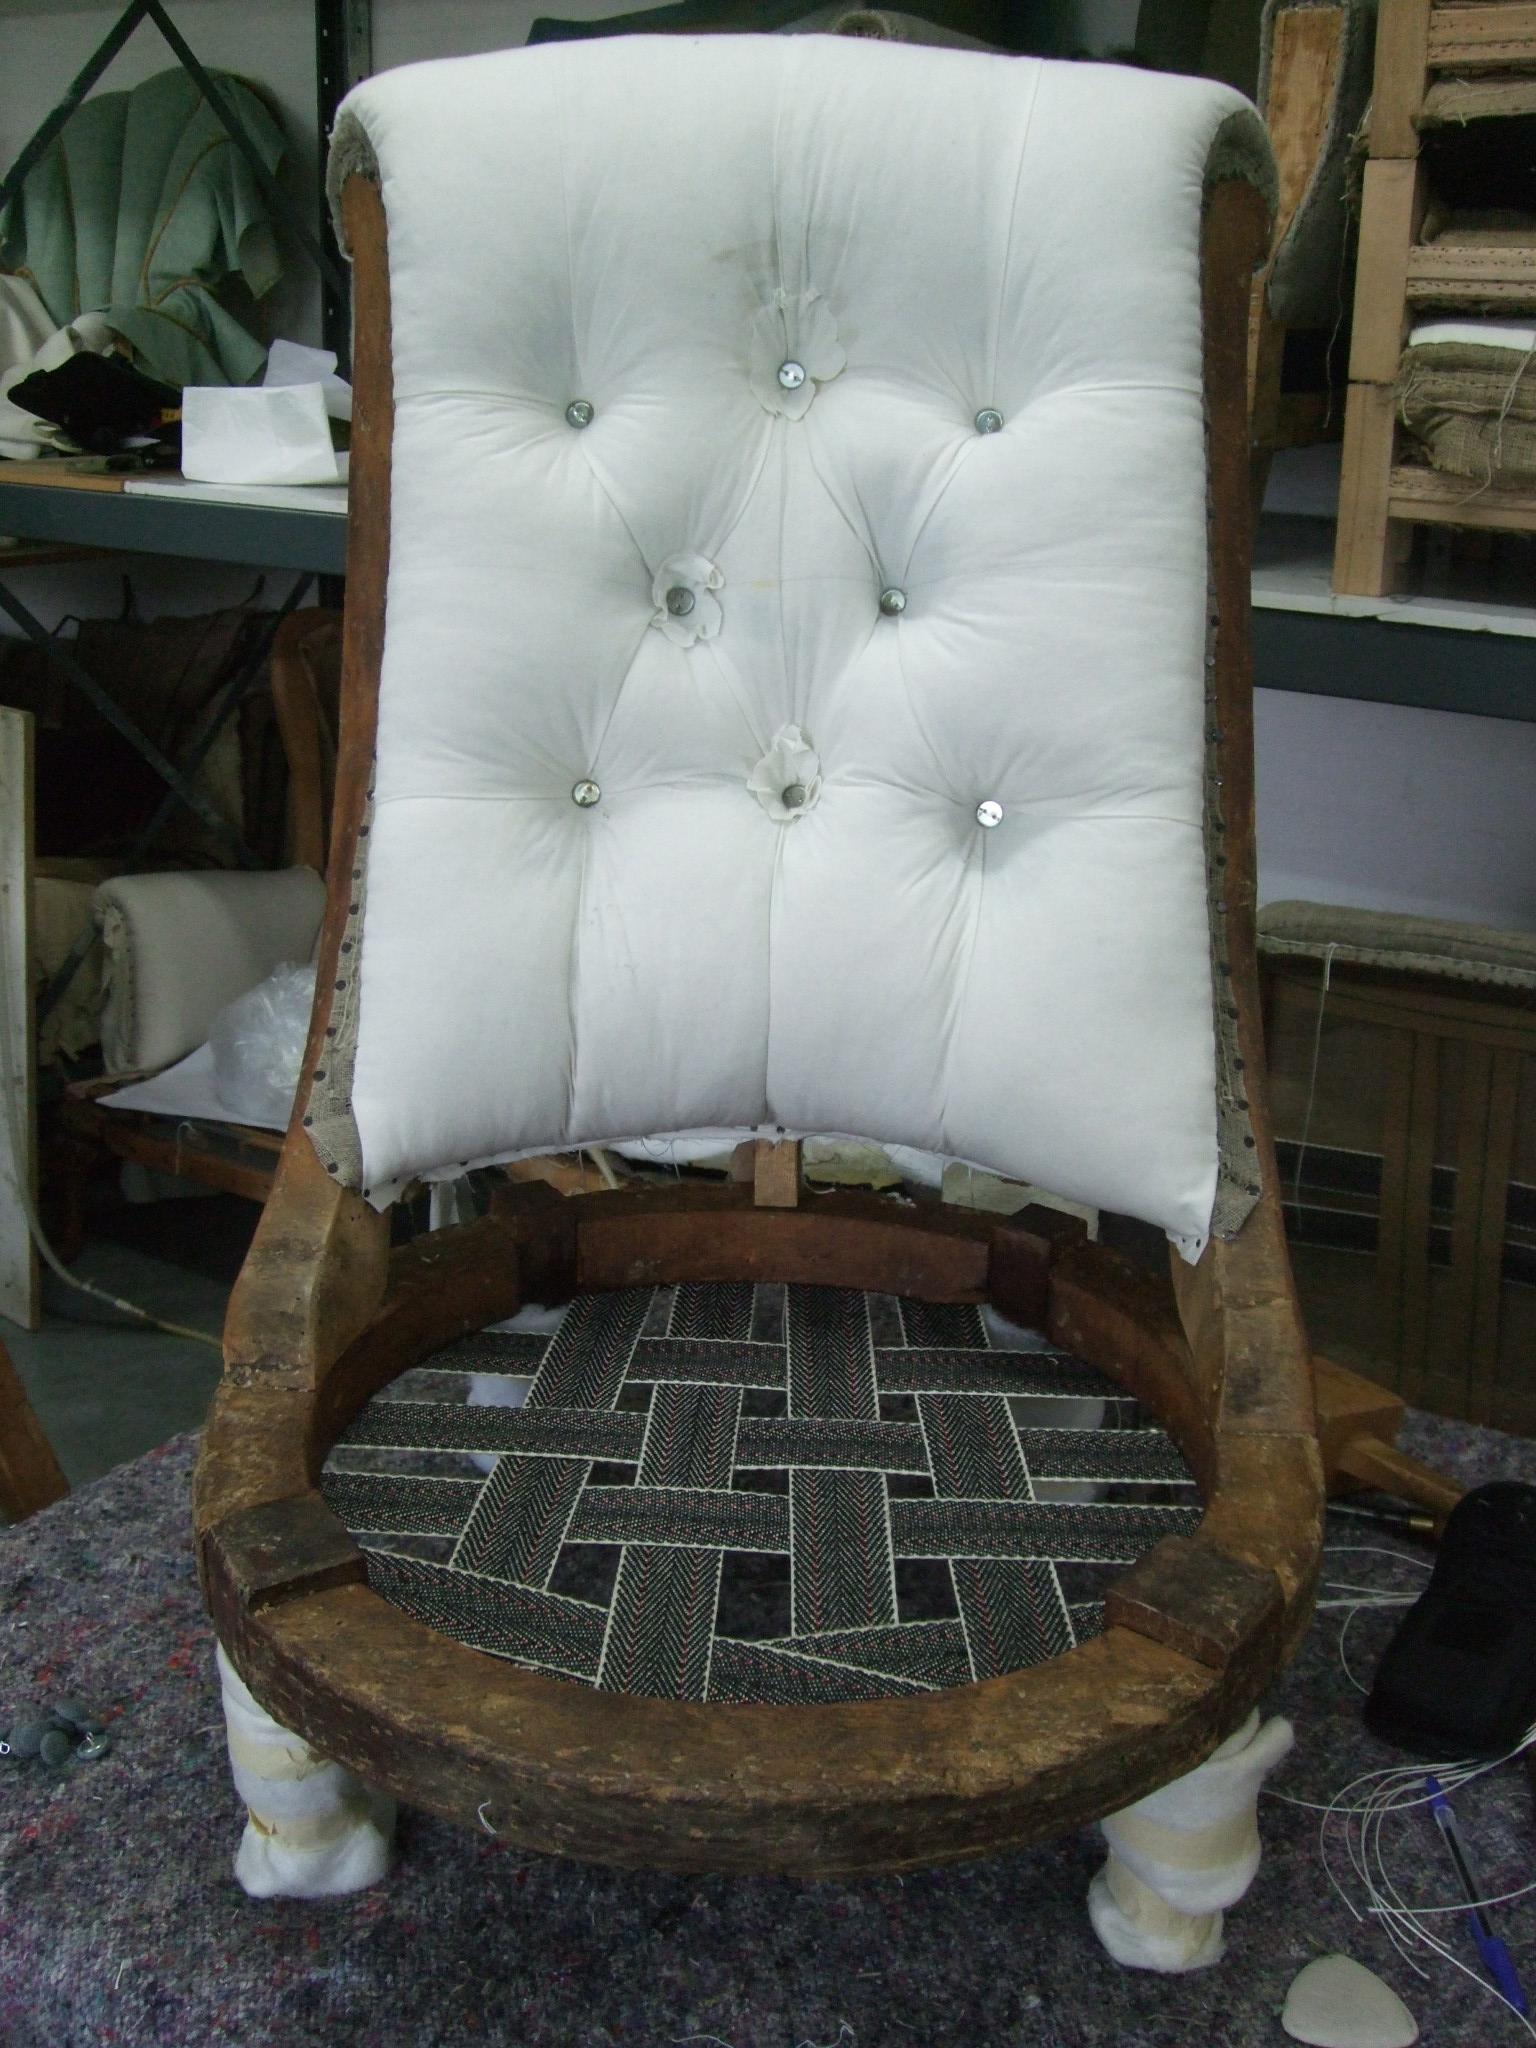 After Many, Many Hours And A Lot Of Effort U2013 This Was The End Resultu2026 A  Very Comfortable, Deep Buttoned Victorian Slipper Chair.